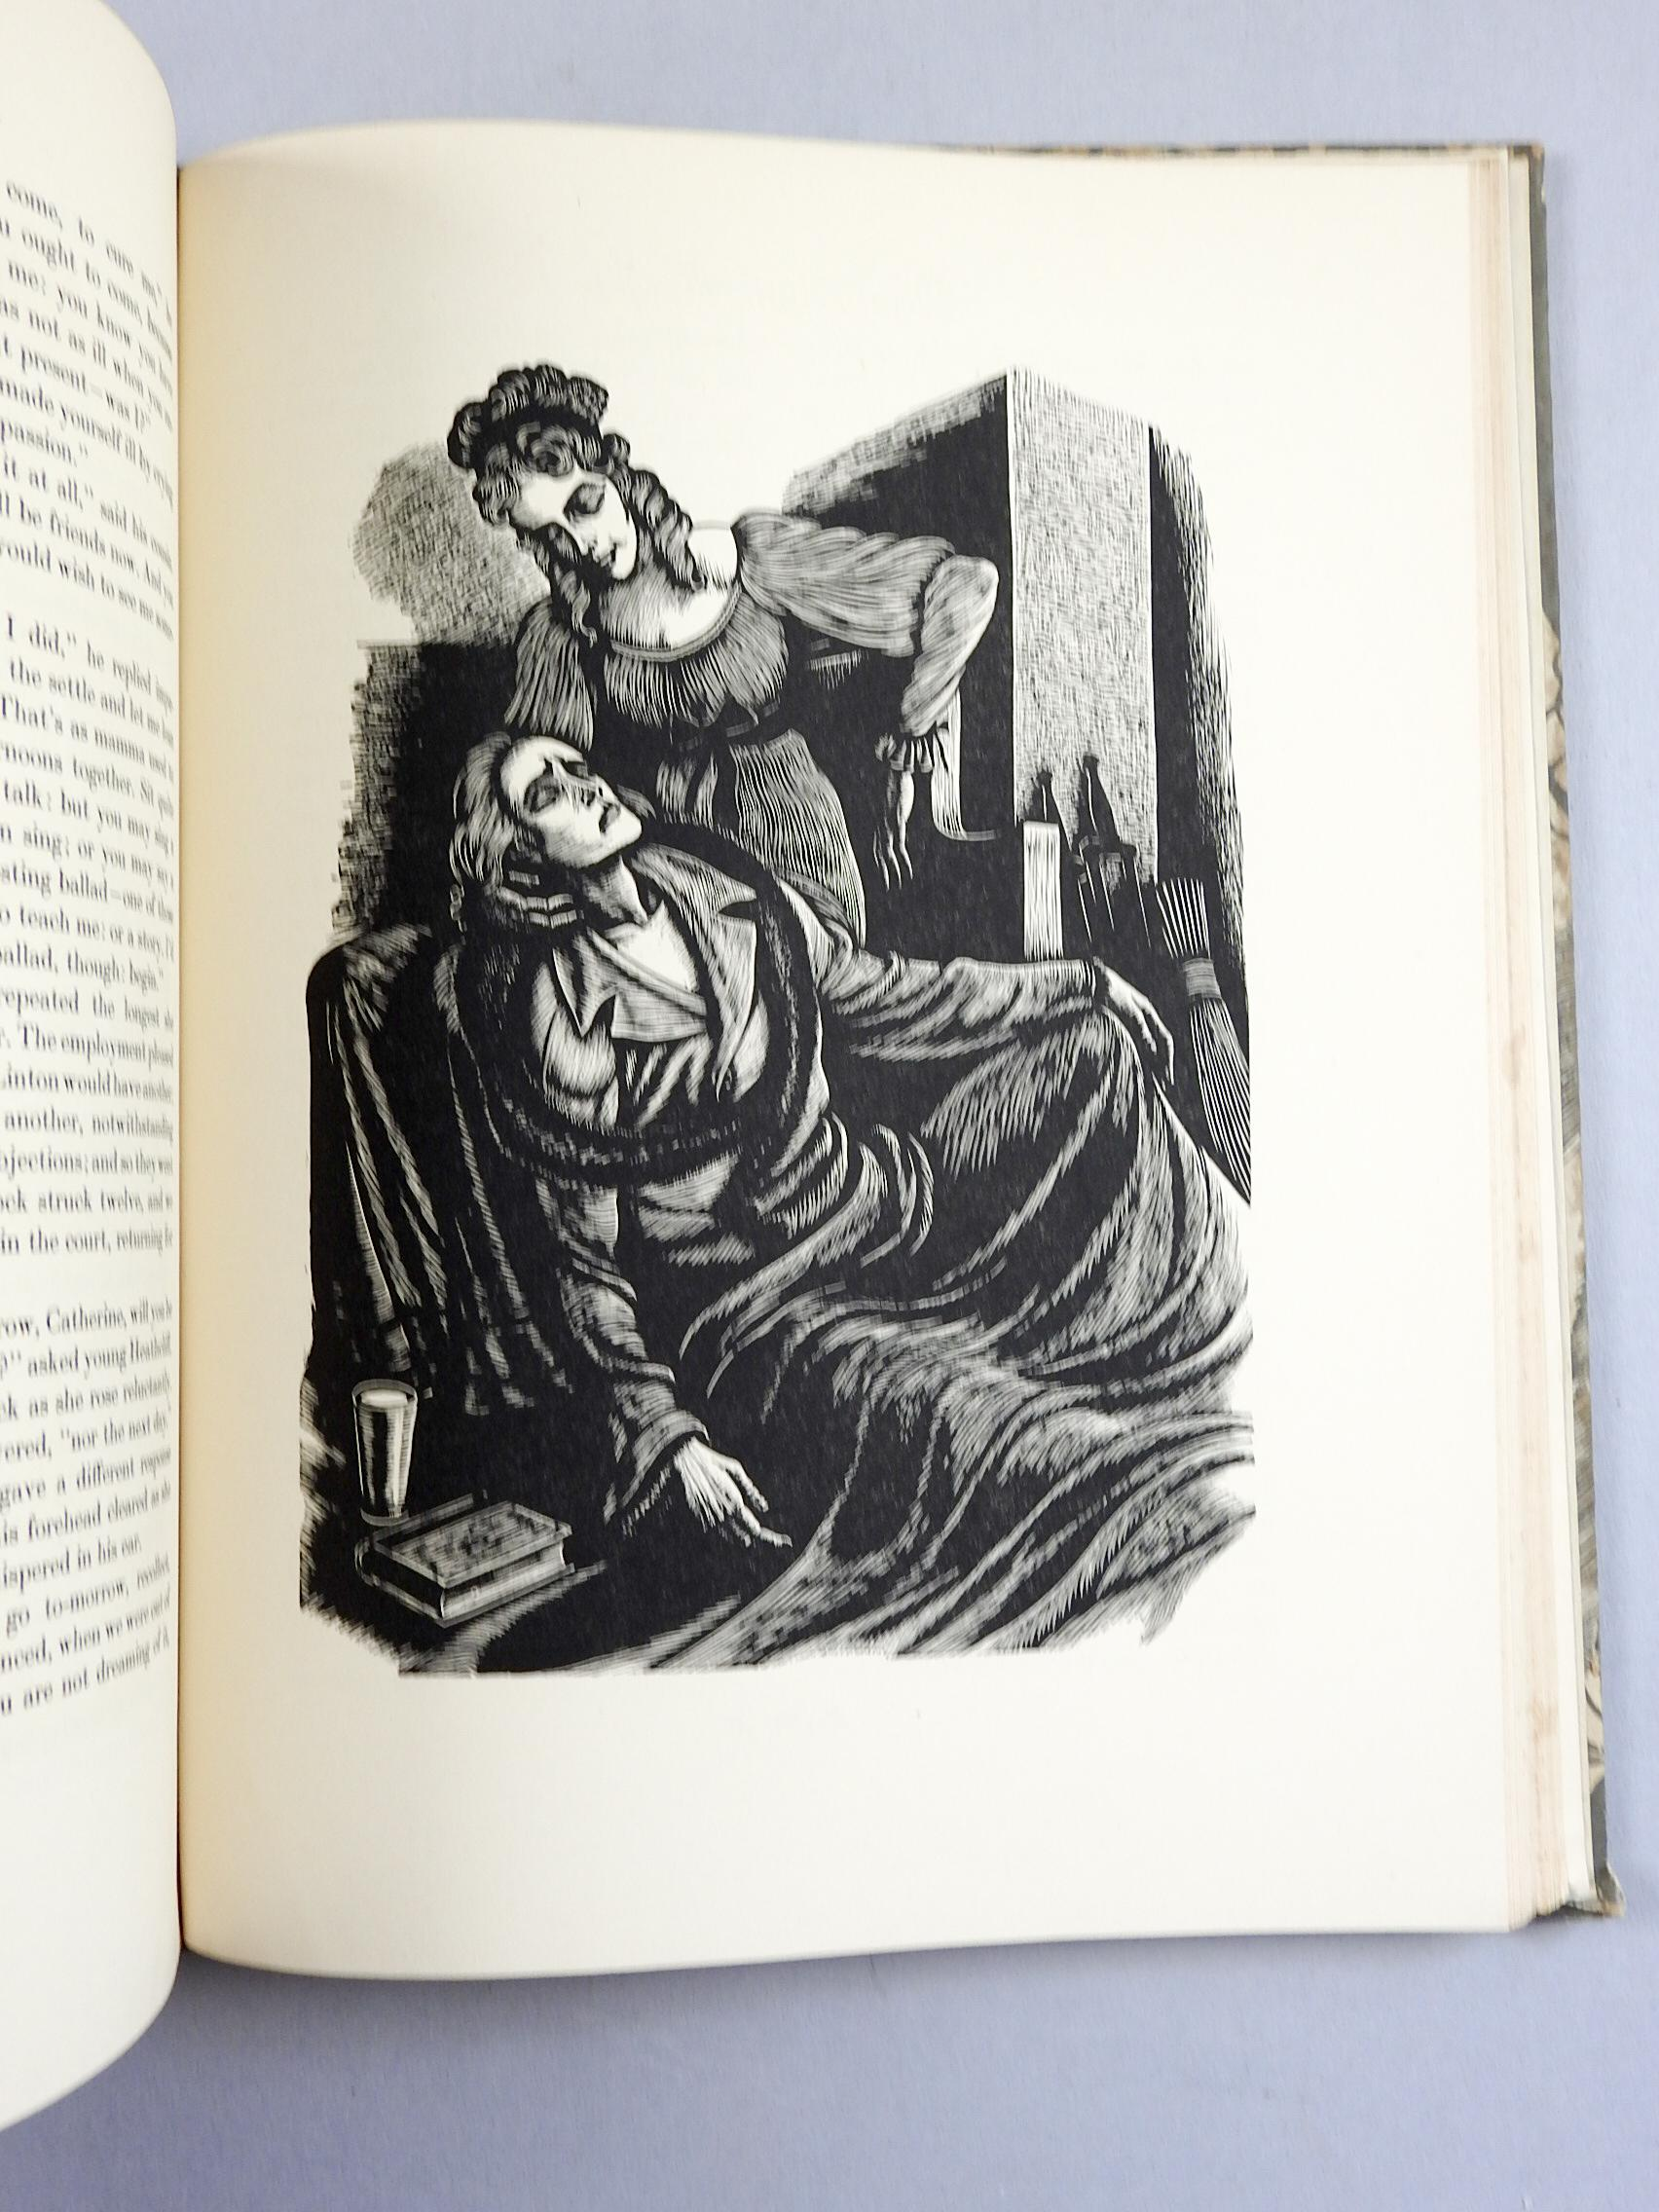 a review of the book wuthering heights by emily bronte Free summary and analysis of the events in emily brontë's wuthering heights  that won't make you snore we promise.